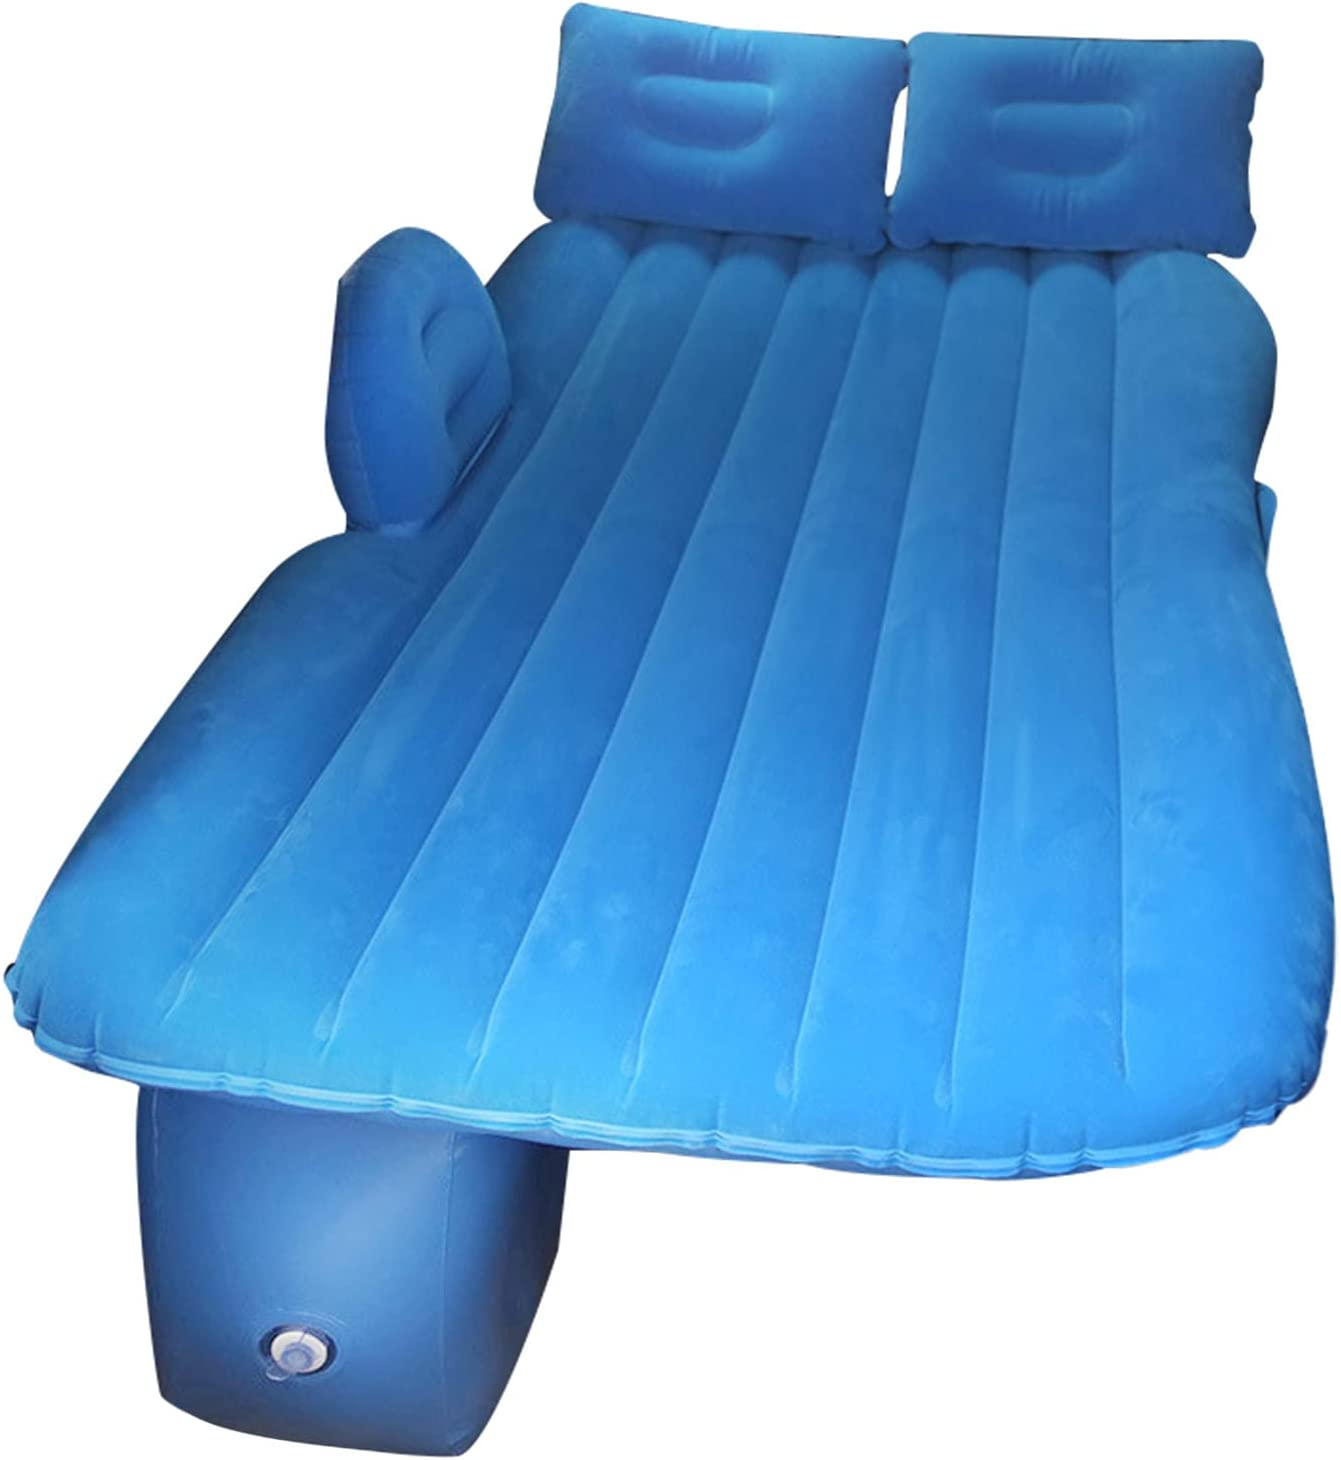 Inflatable Car Air Mattress SUV Bed Max 56% OFF with Backseat Pillow 2 We OFFer at cheap prices